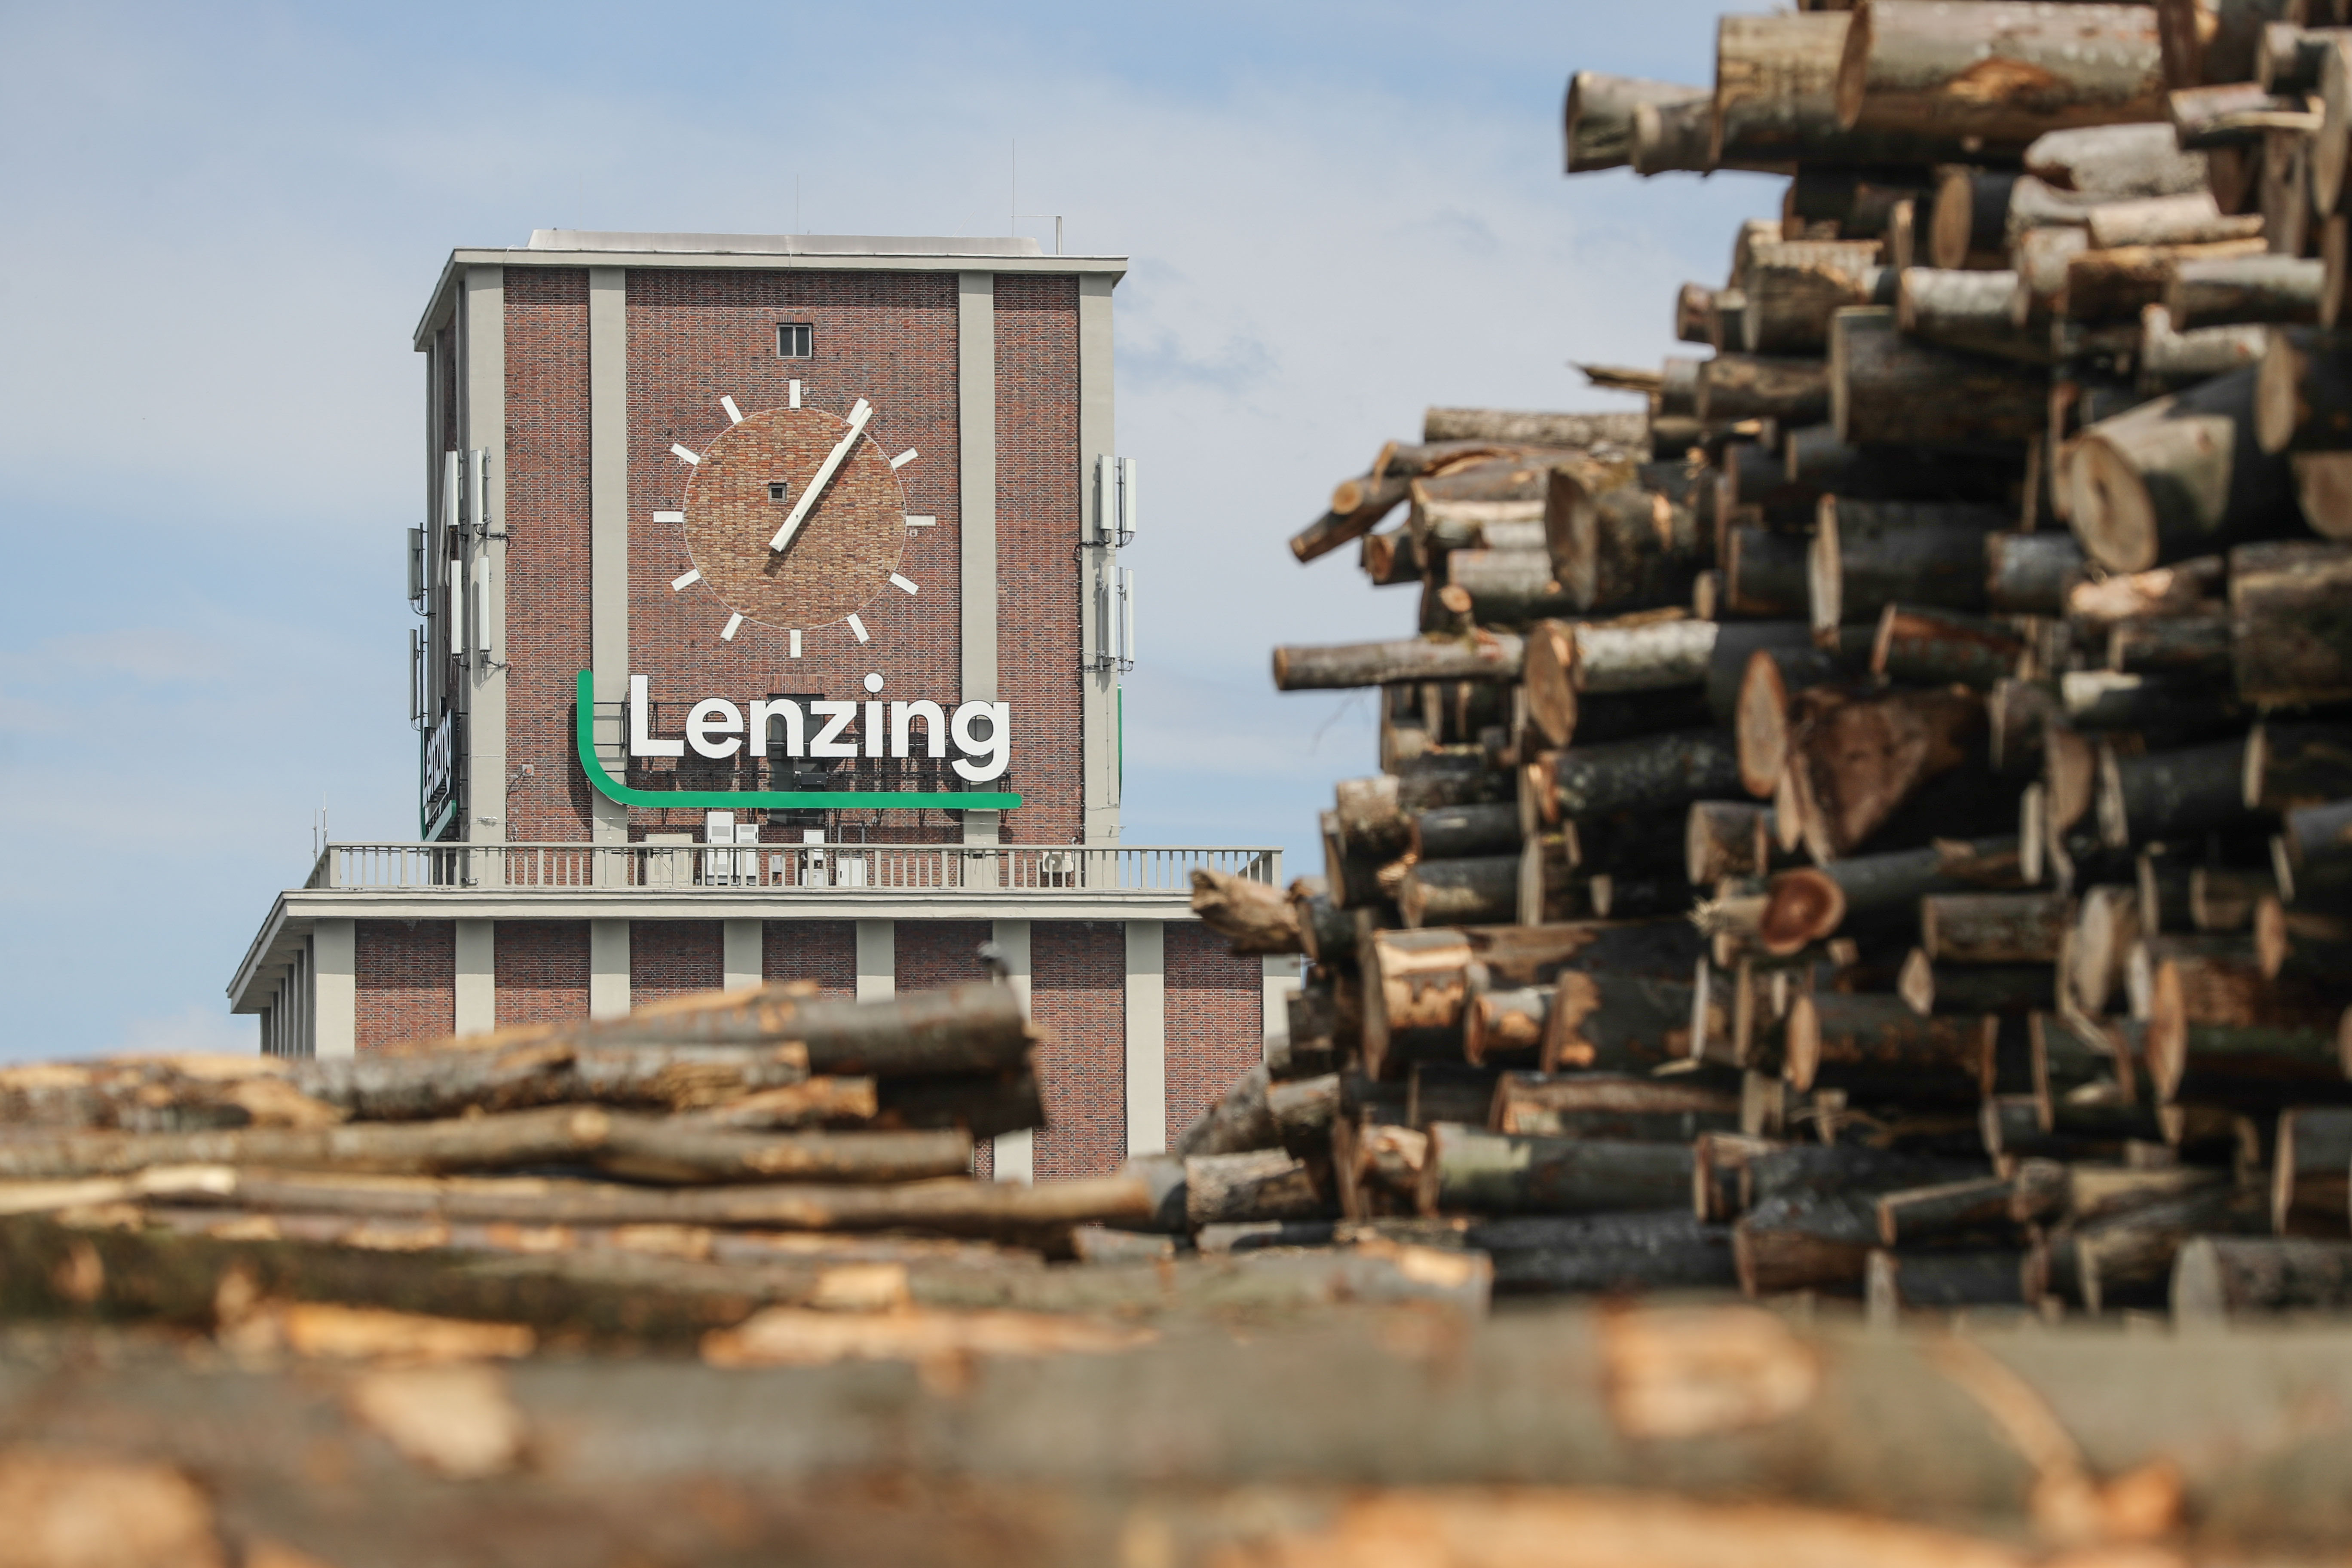 Lenzing aims to become carbon-neutral by 2050